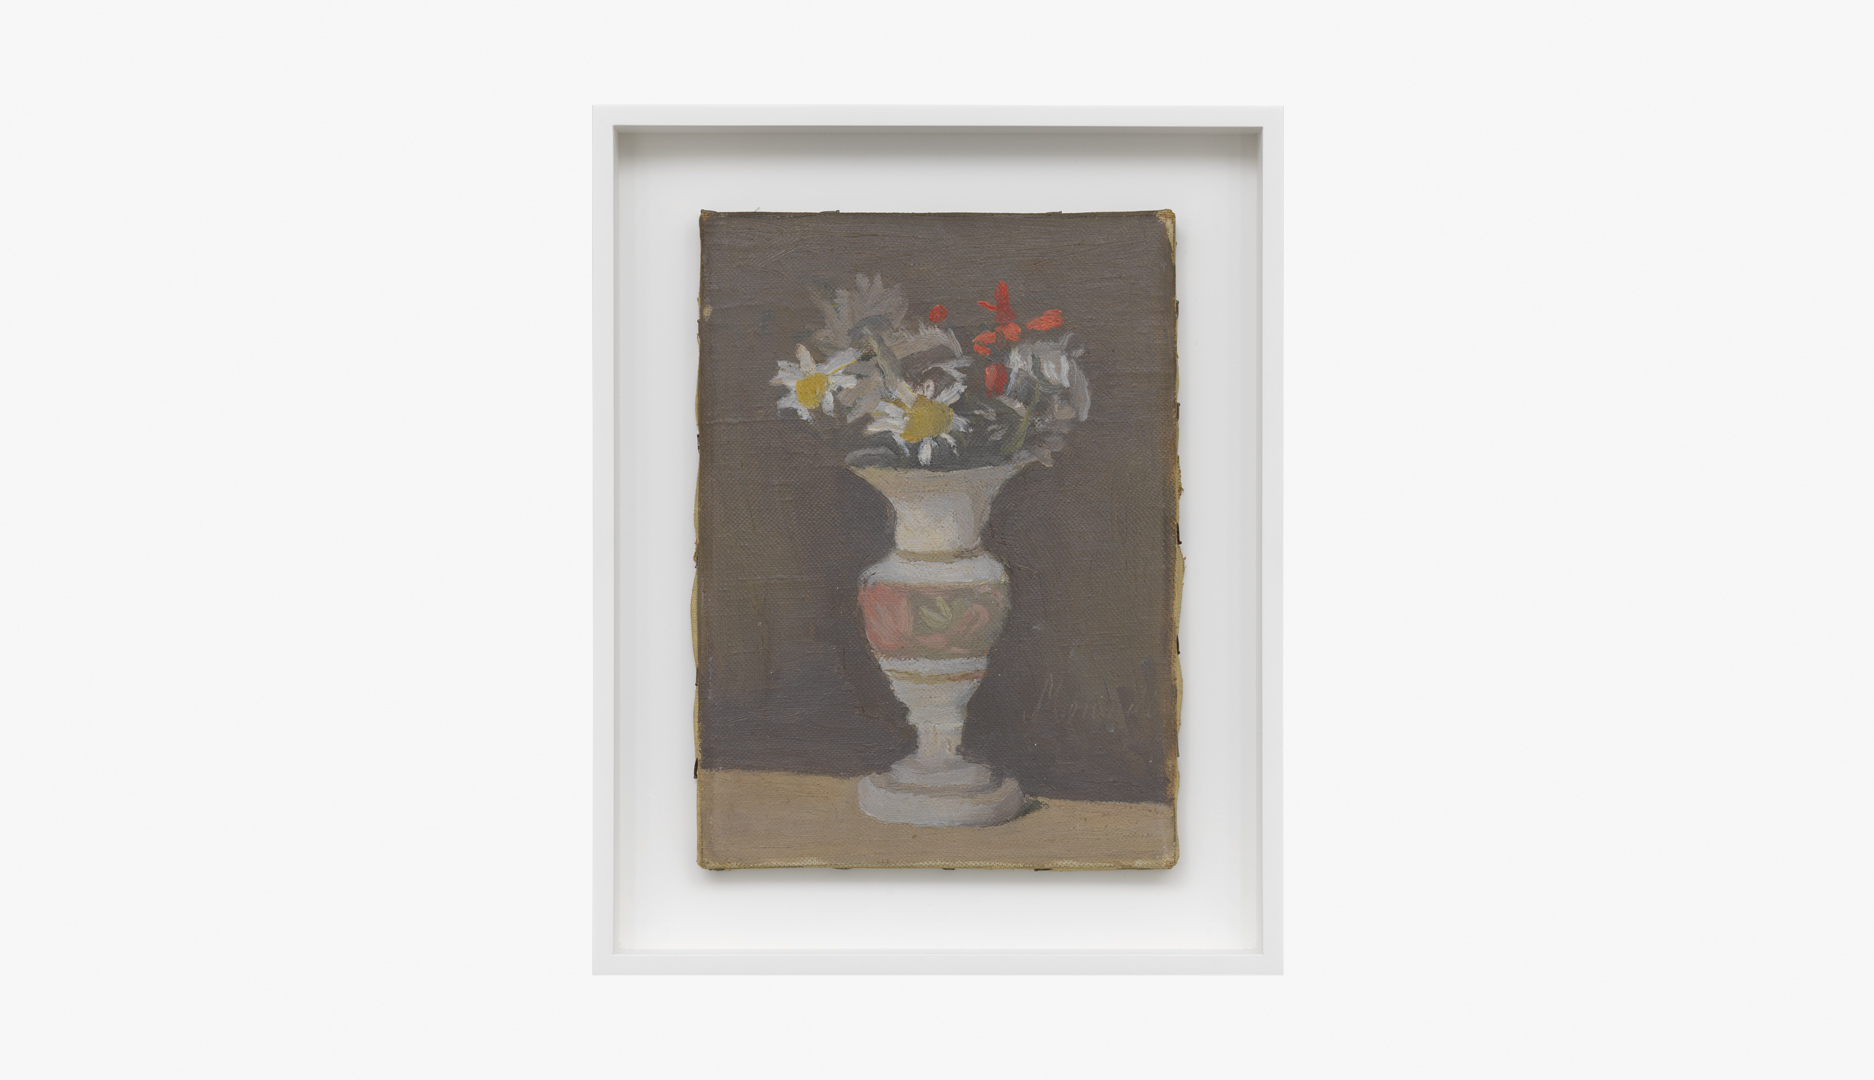 A painting by Giorgio Morandi, titled Fiori (Flowers), dated 1947.